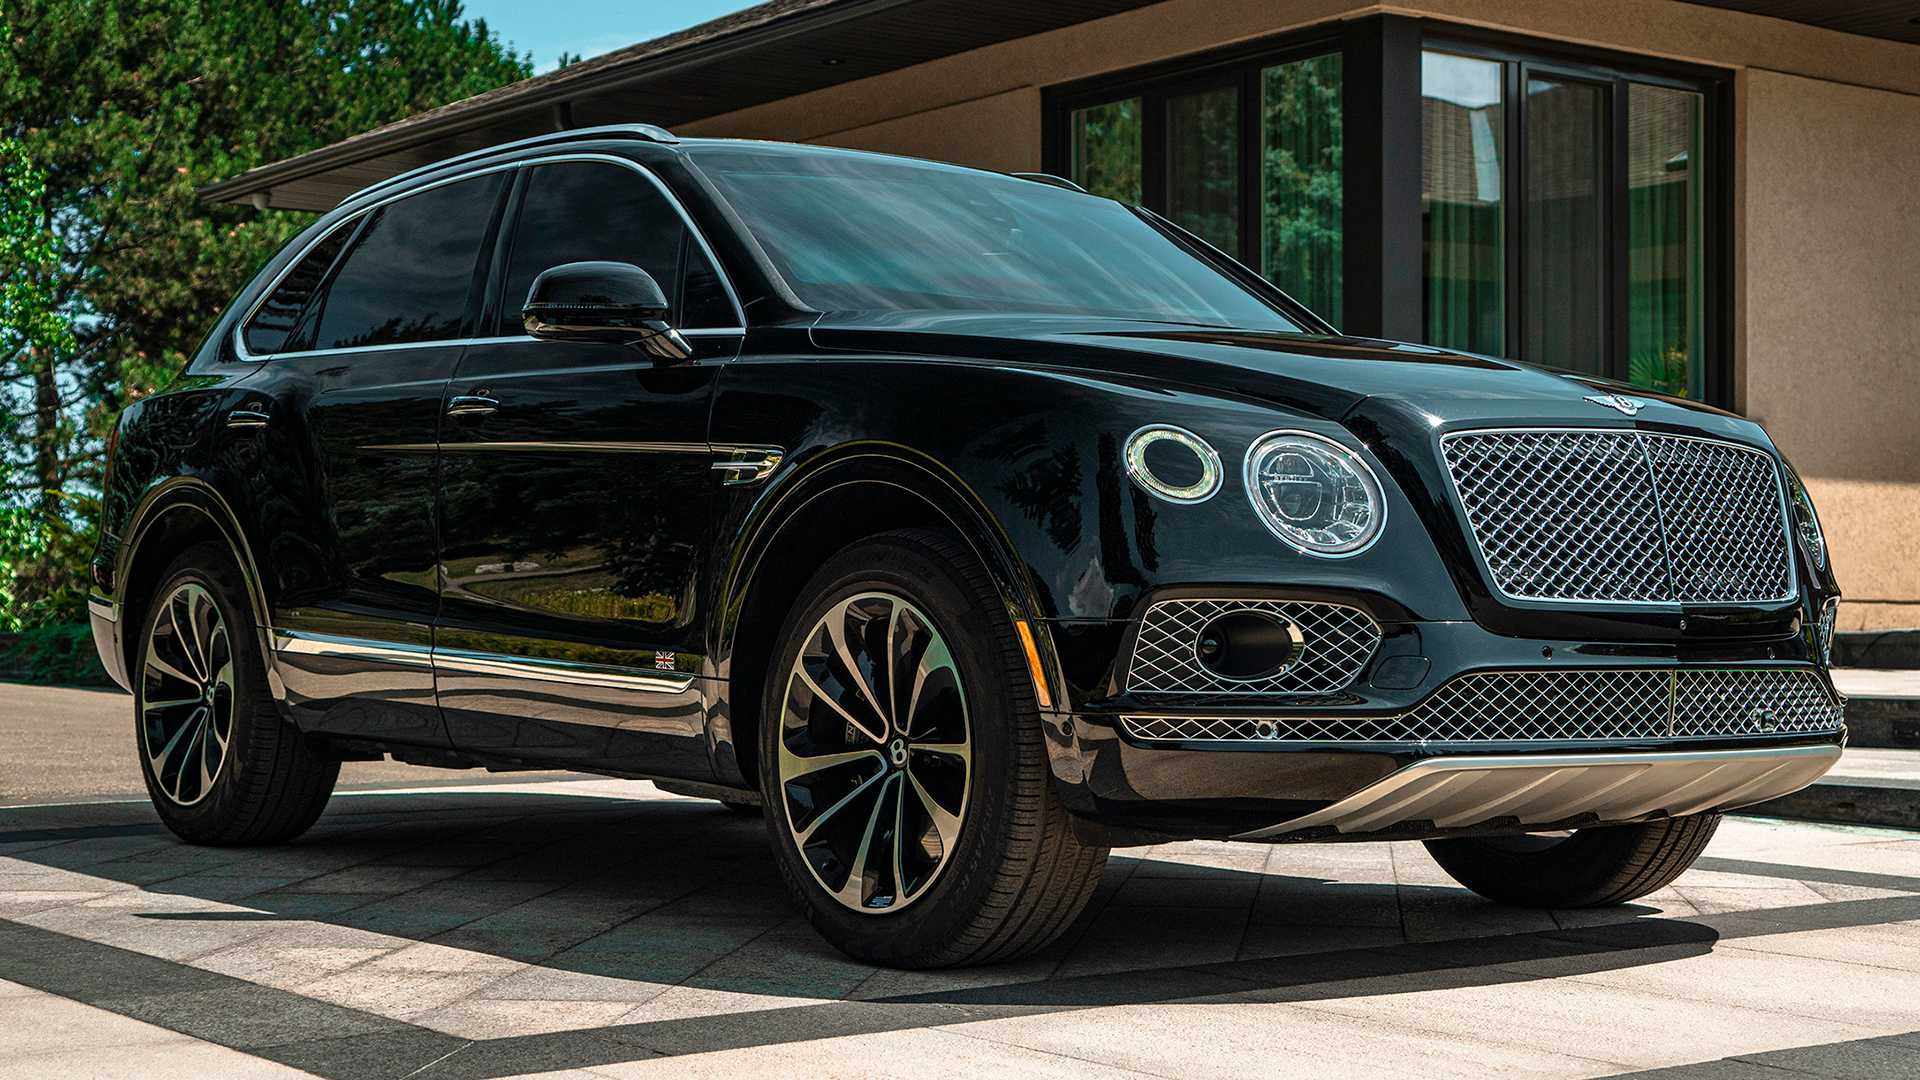 armored-bentley-bentayga-by-inkas-5